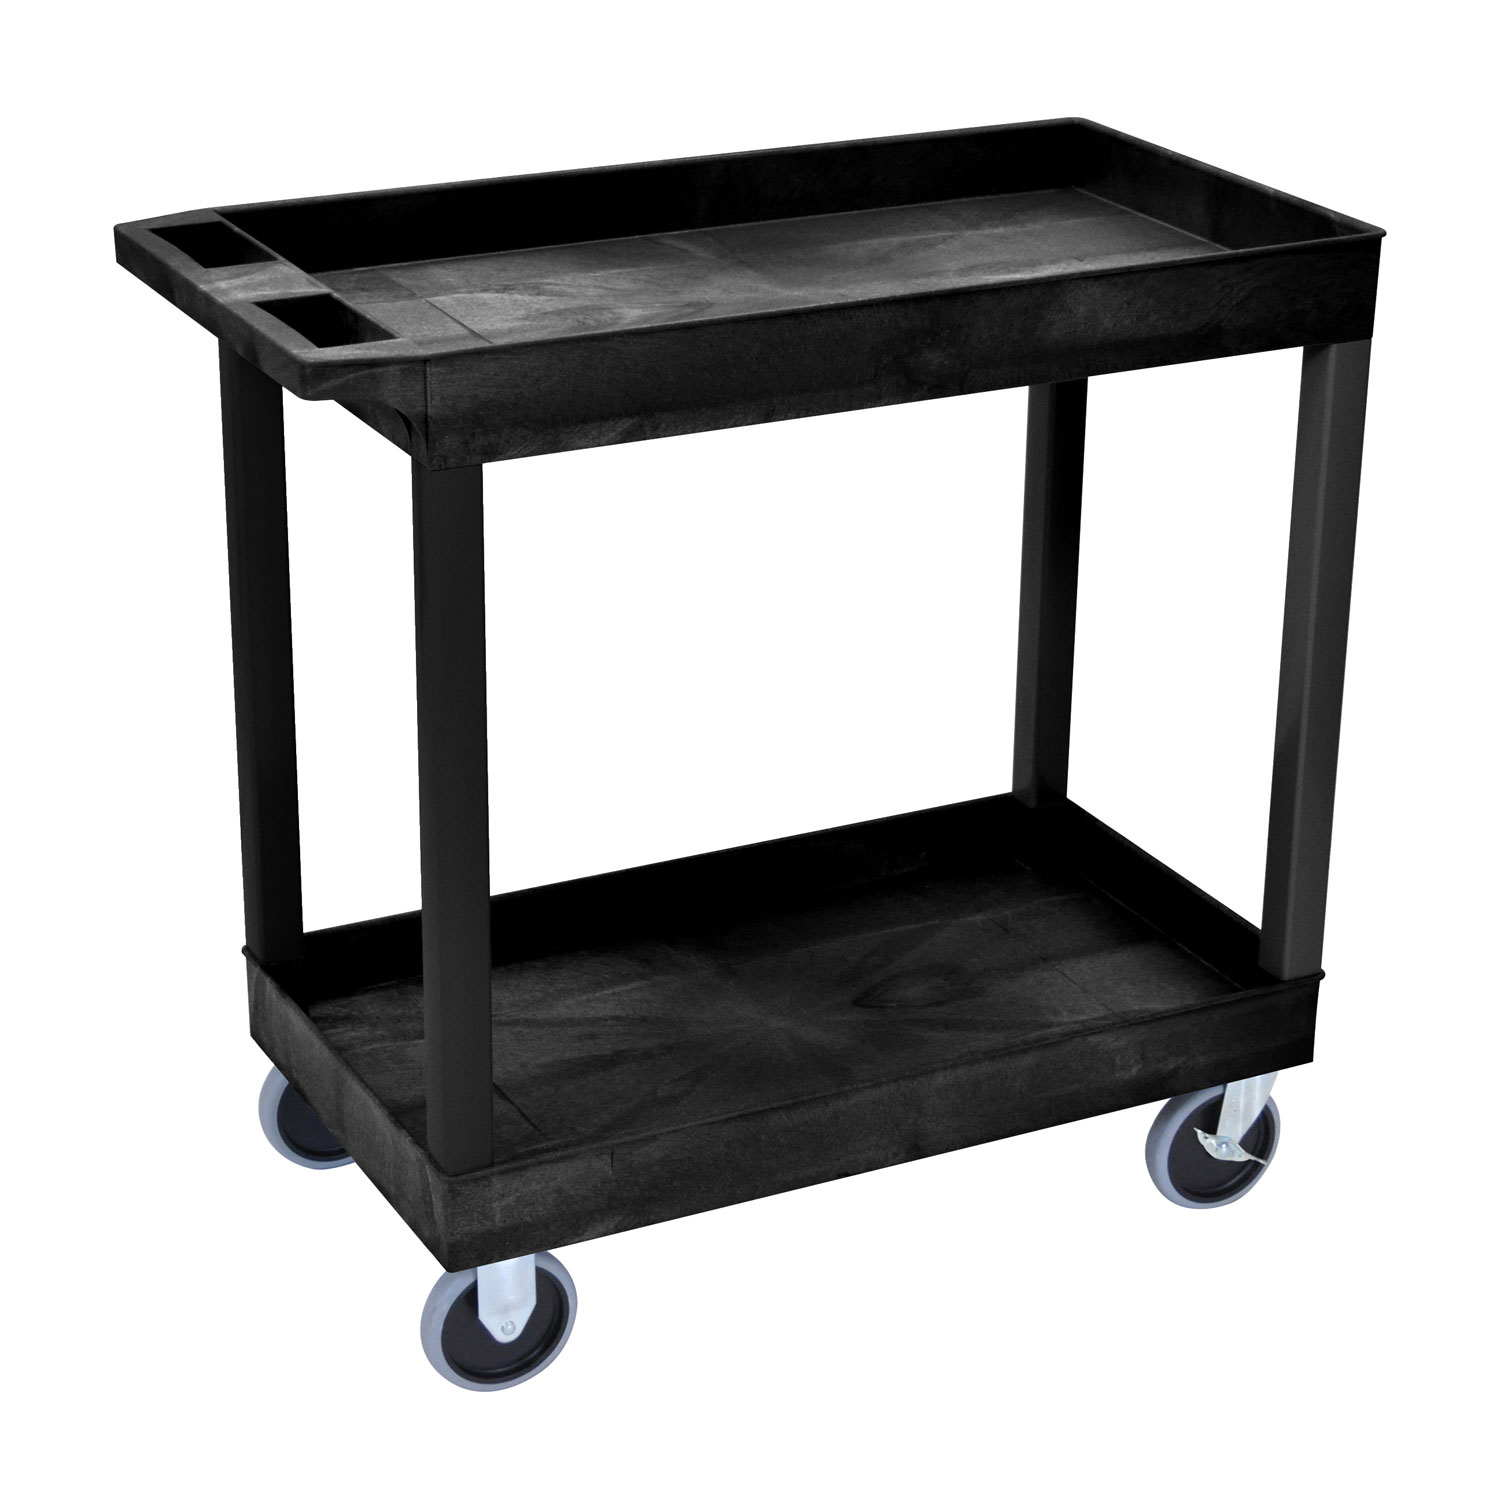 Offex 32 x 18 Two Shelves Tub Cart - Black